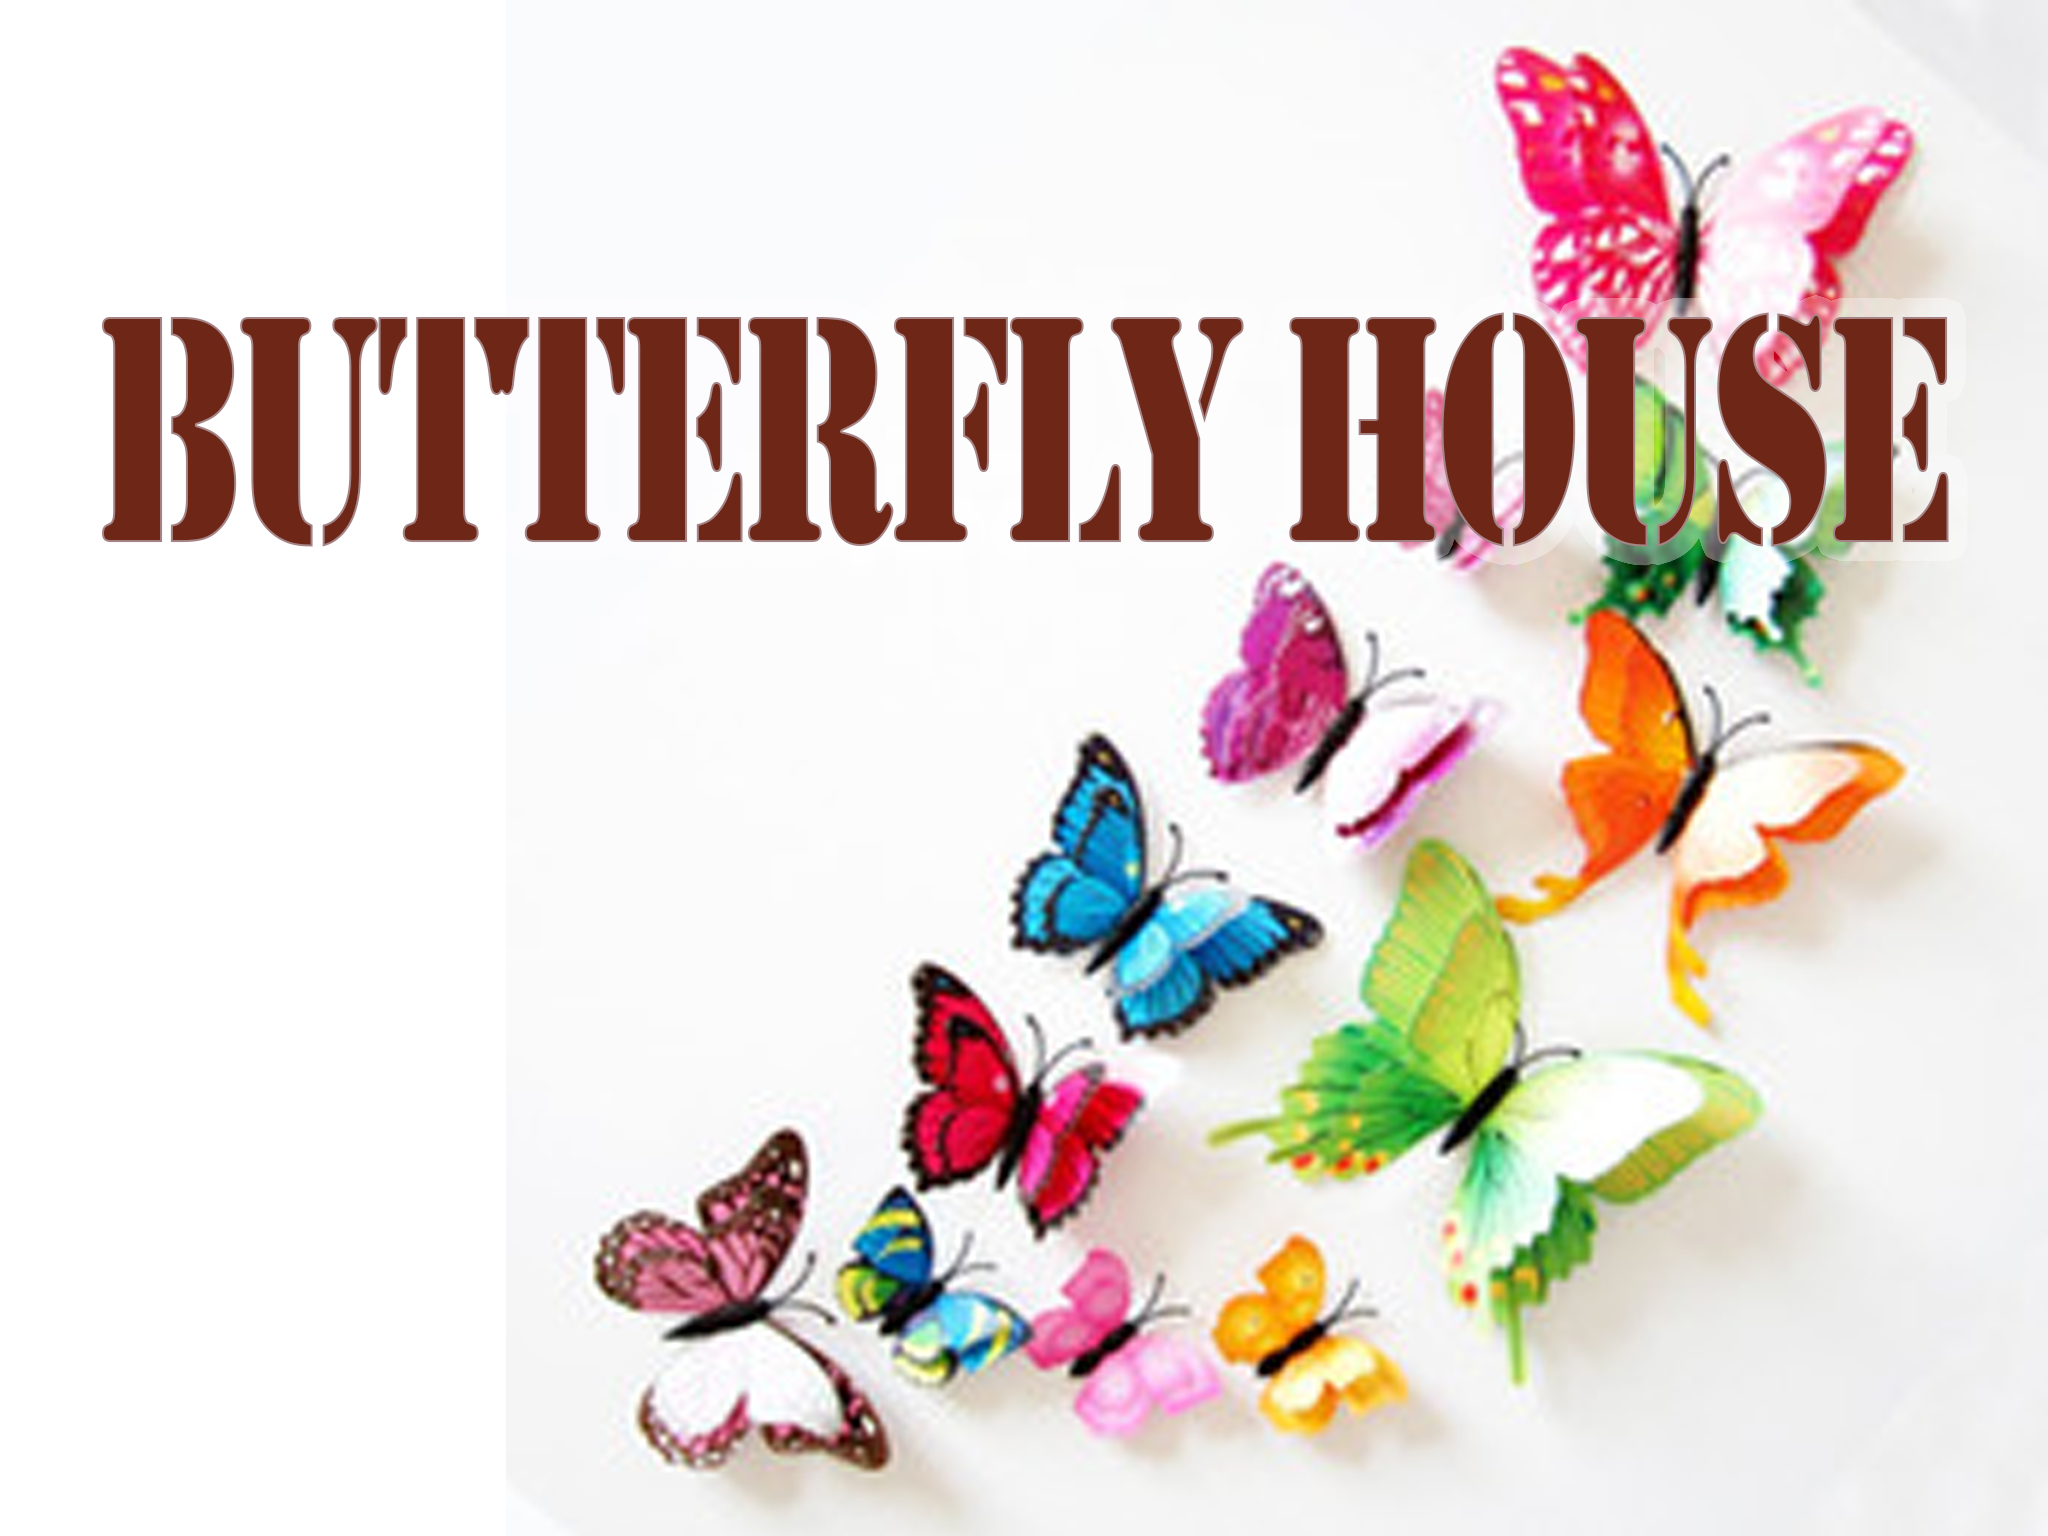 ButterflyHouseGraphic